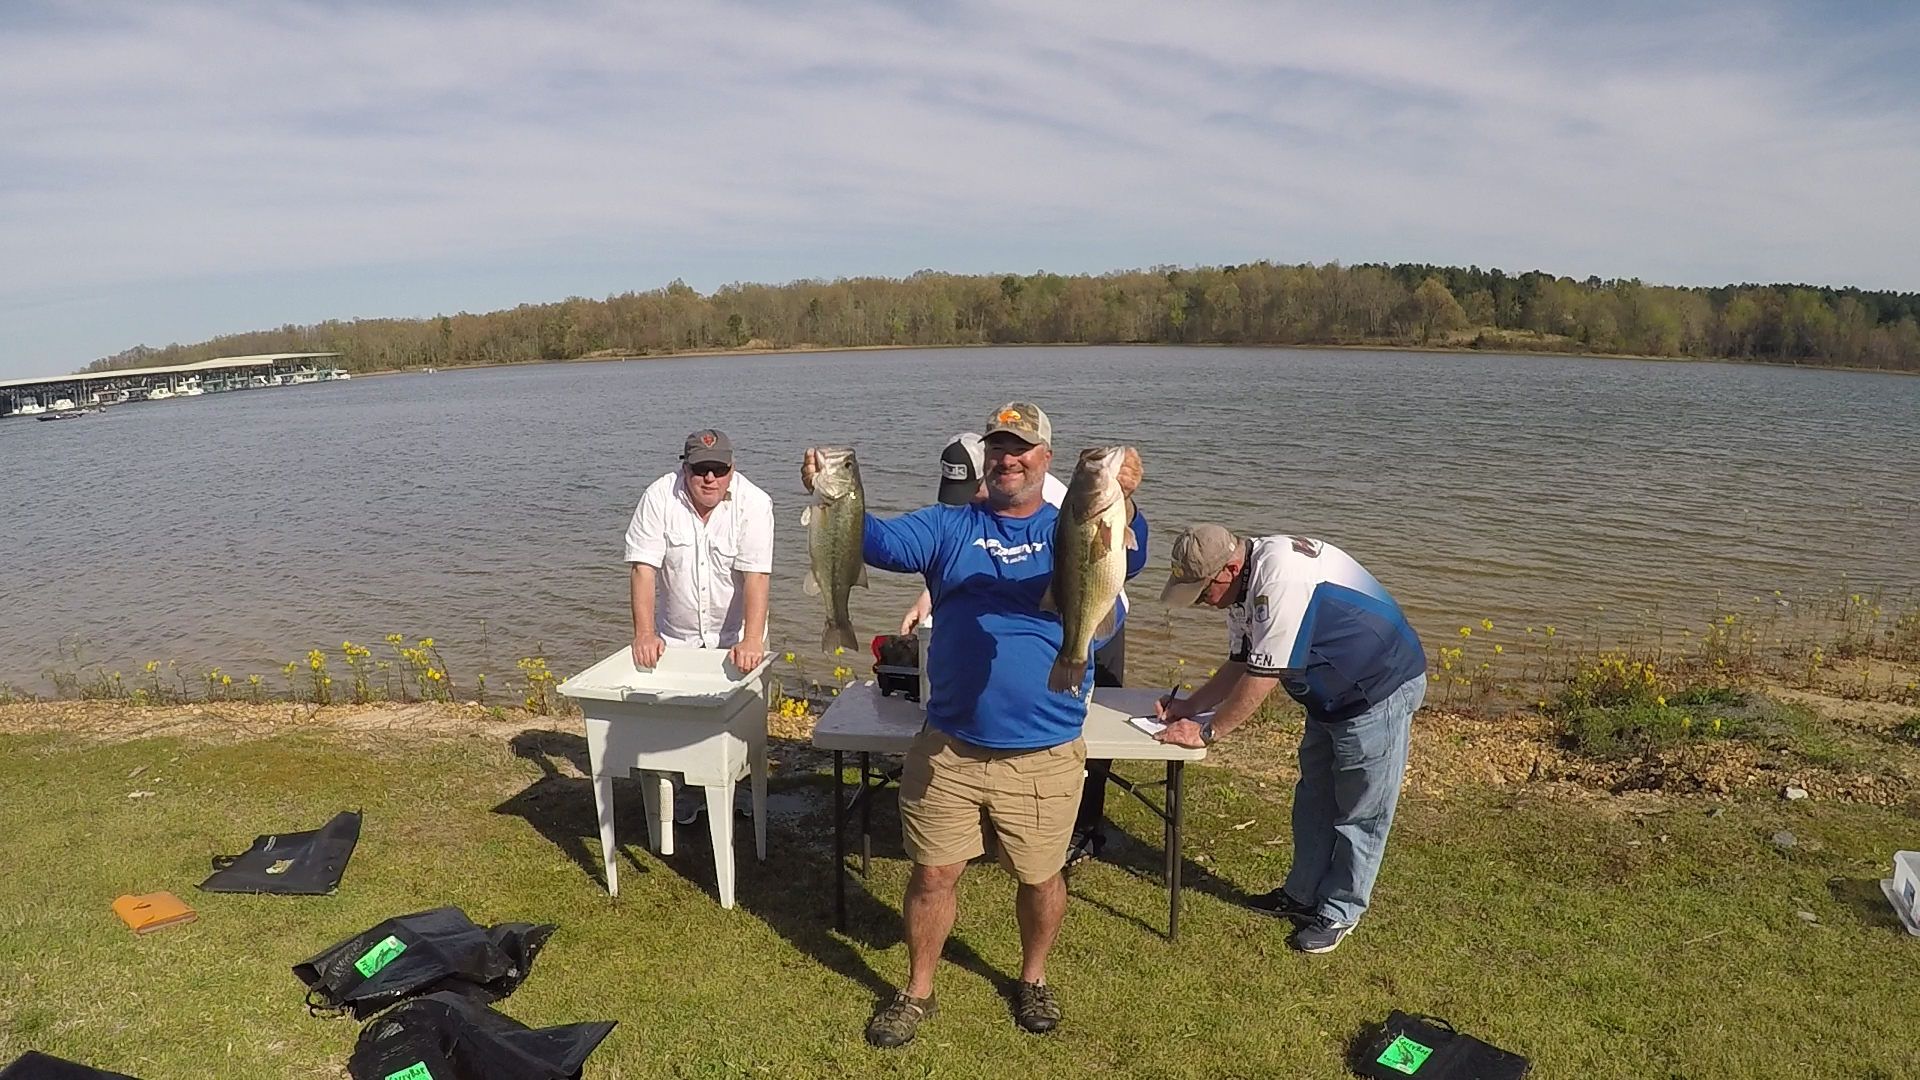 kentucky lake tournament28